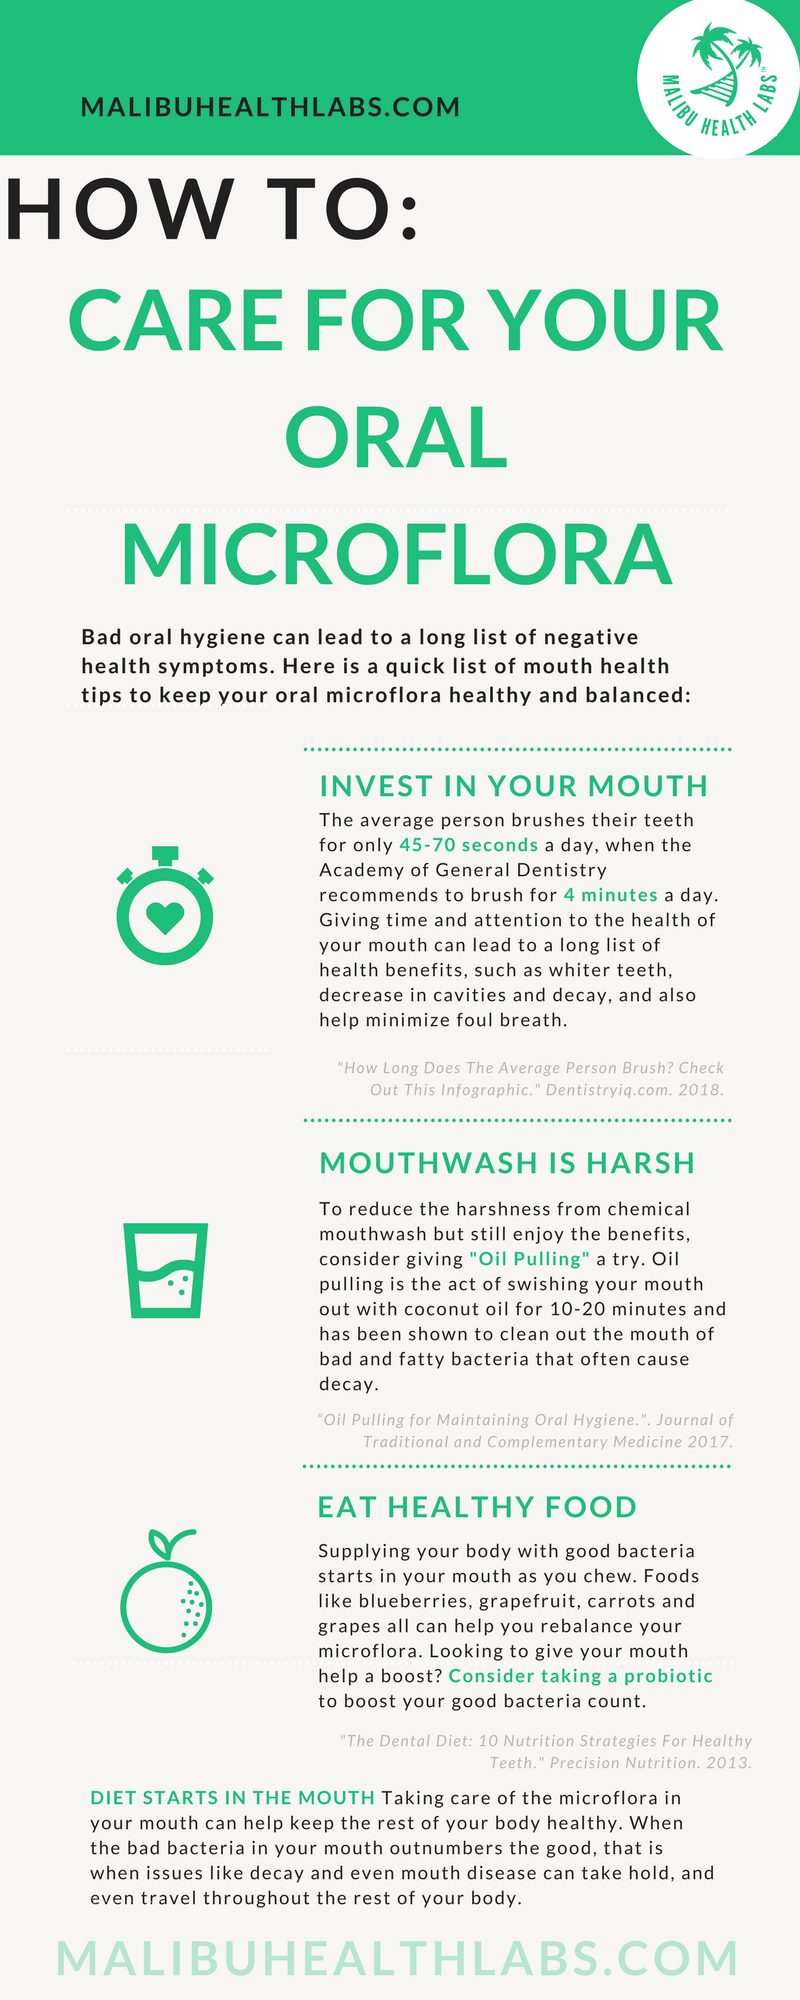 How to Care for Your Oral Microflora | Malibu Health Labs